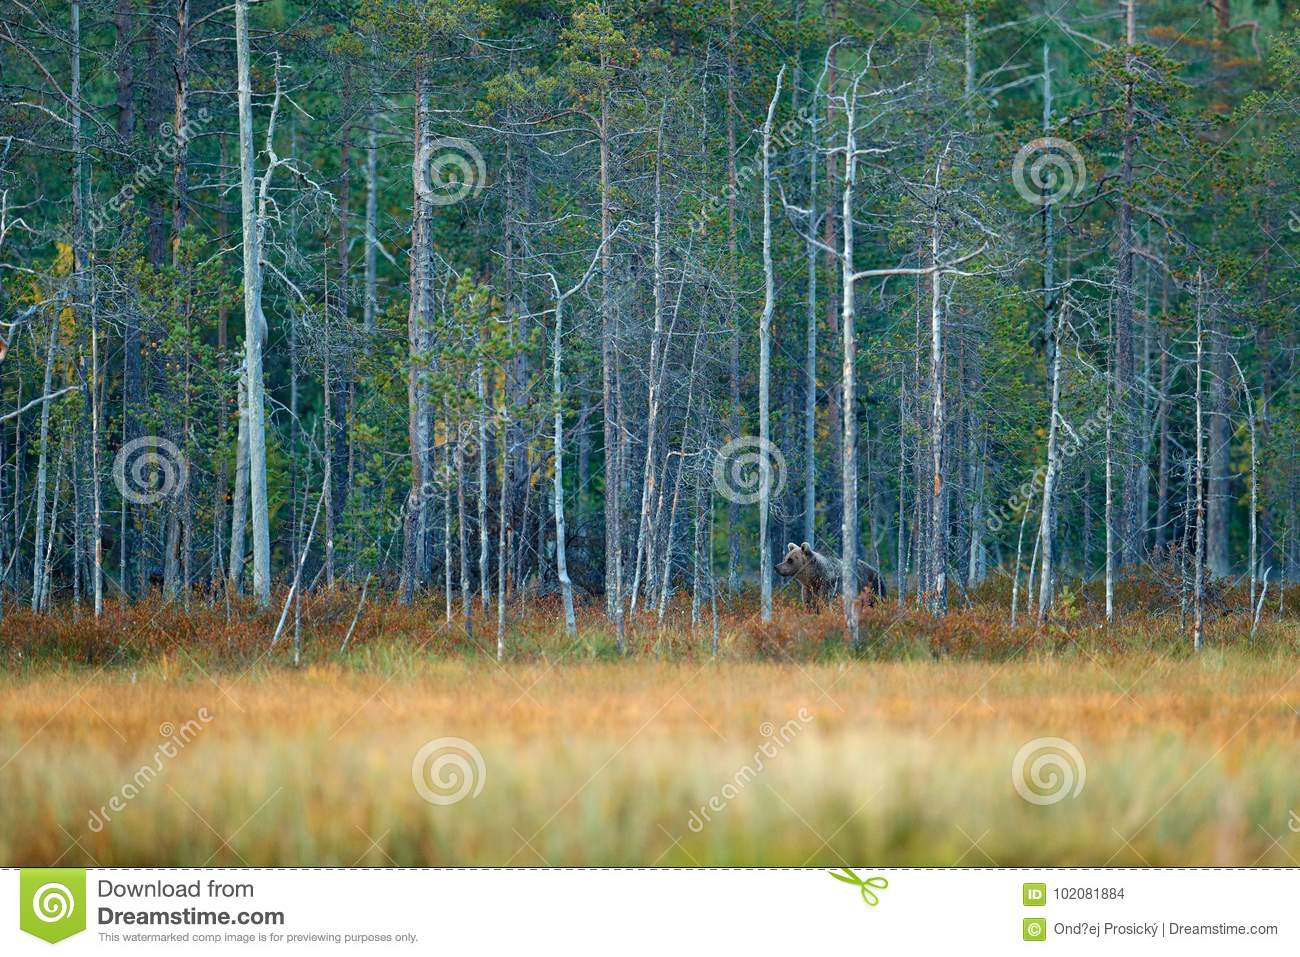 Bear hidden in yellow pine and birch forest. Autumn wood with bear. Beautiful brown bear walking around lake with autumn colours.